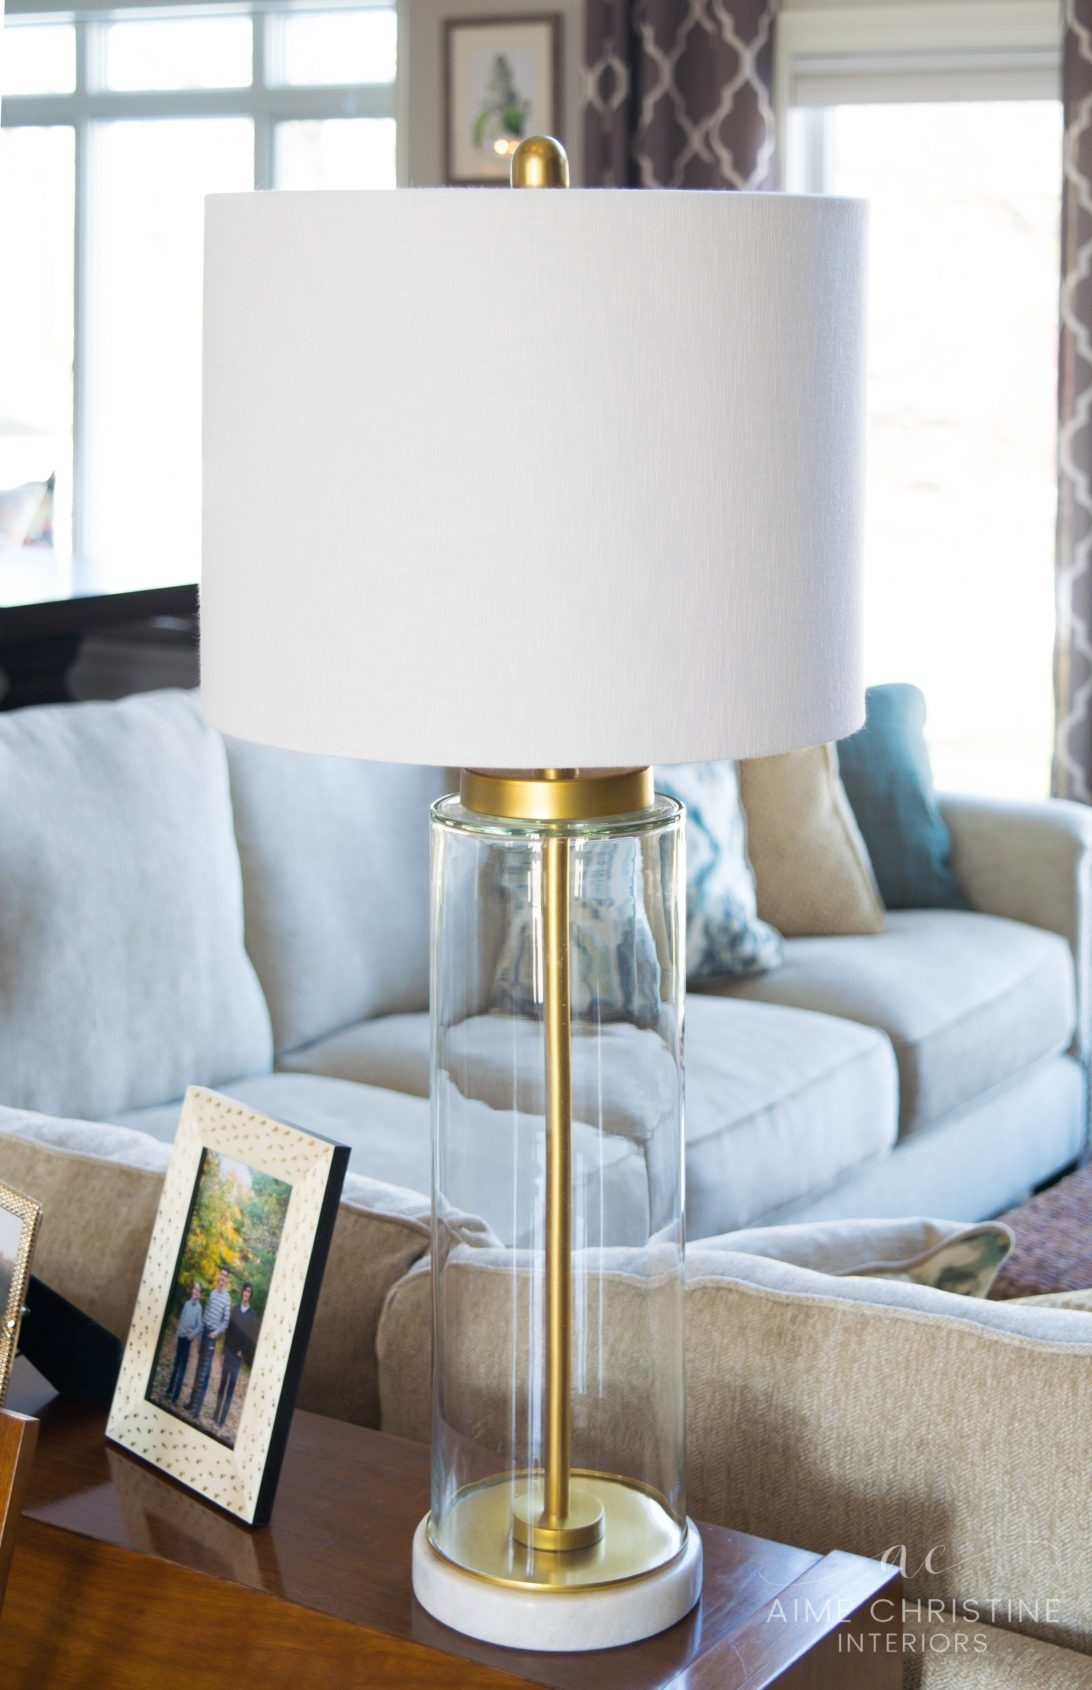 48 Most Blue Chip Pottery Barn Fixtures Kids Floor Lamp Table And Intended For Pottery Barn Table Lamps For Living Room (View 3 of 15)